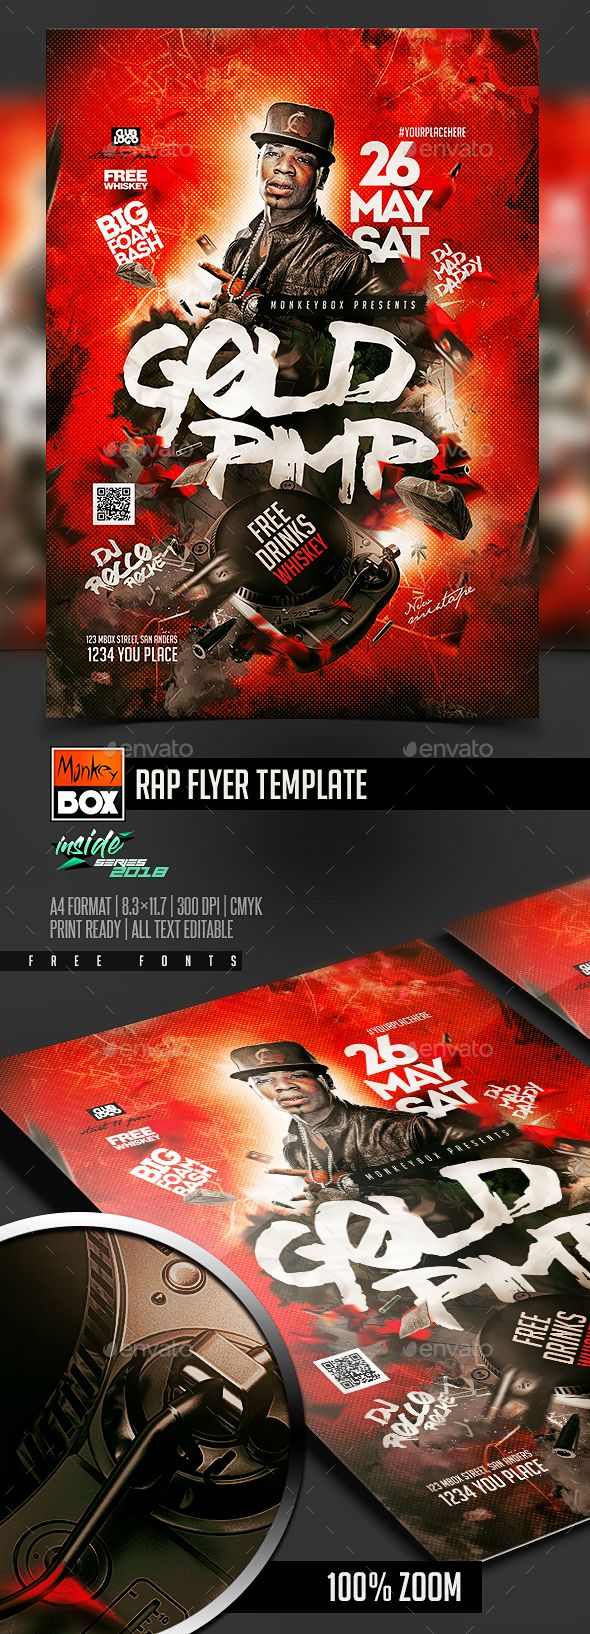 rap flyer template pinterest flyer template template and flyer